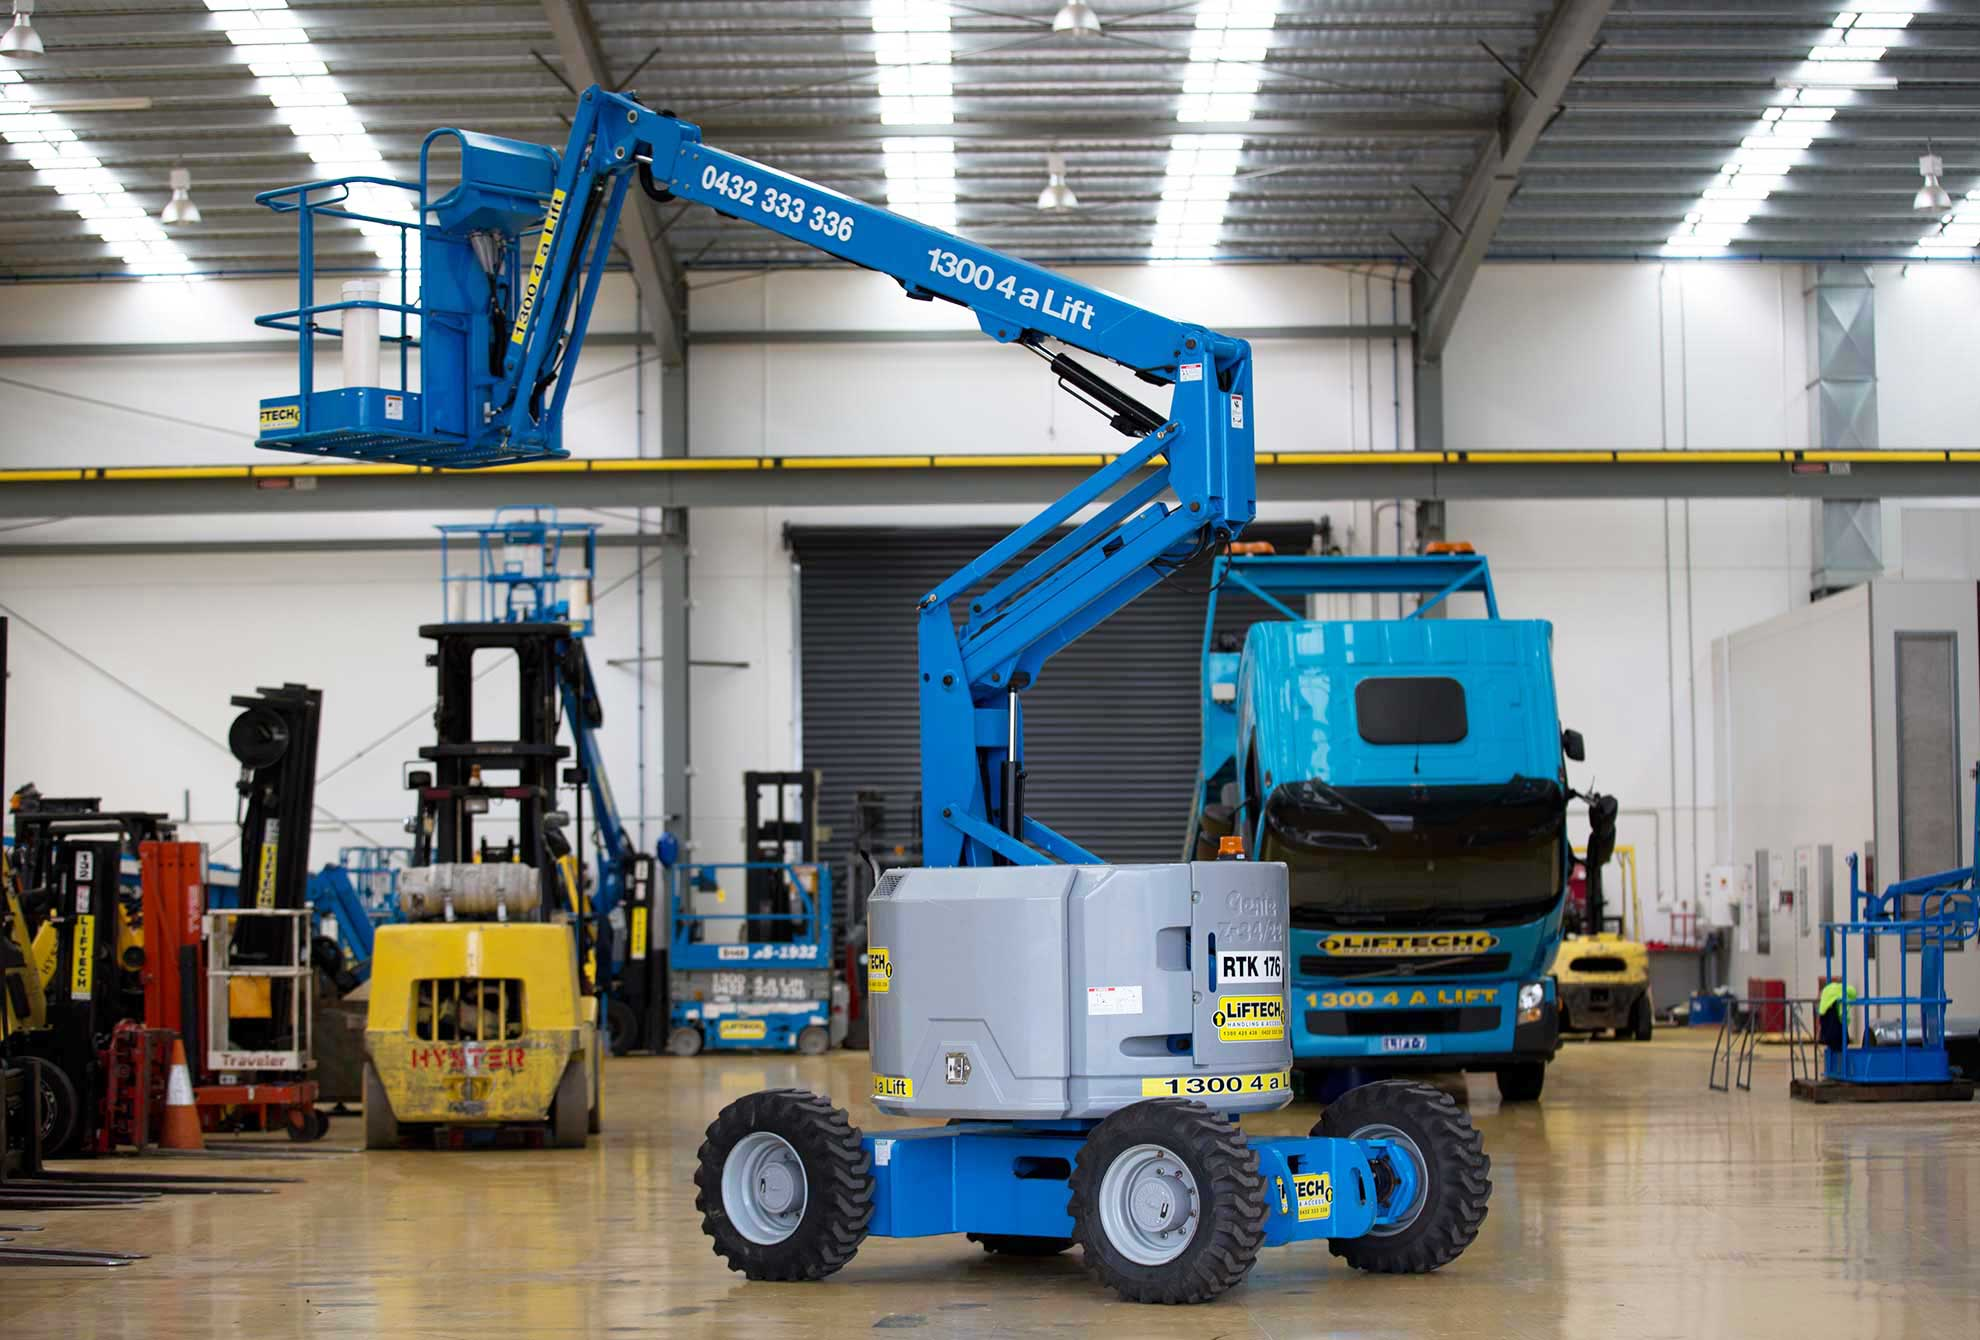 Compact RT Knuckle Boom Lift hire